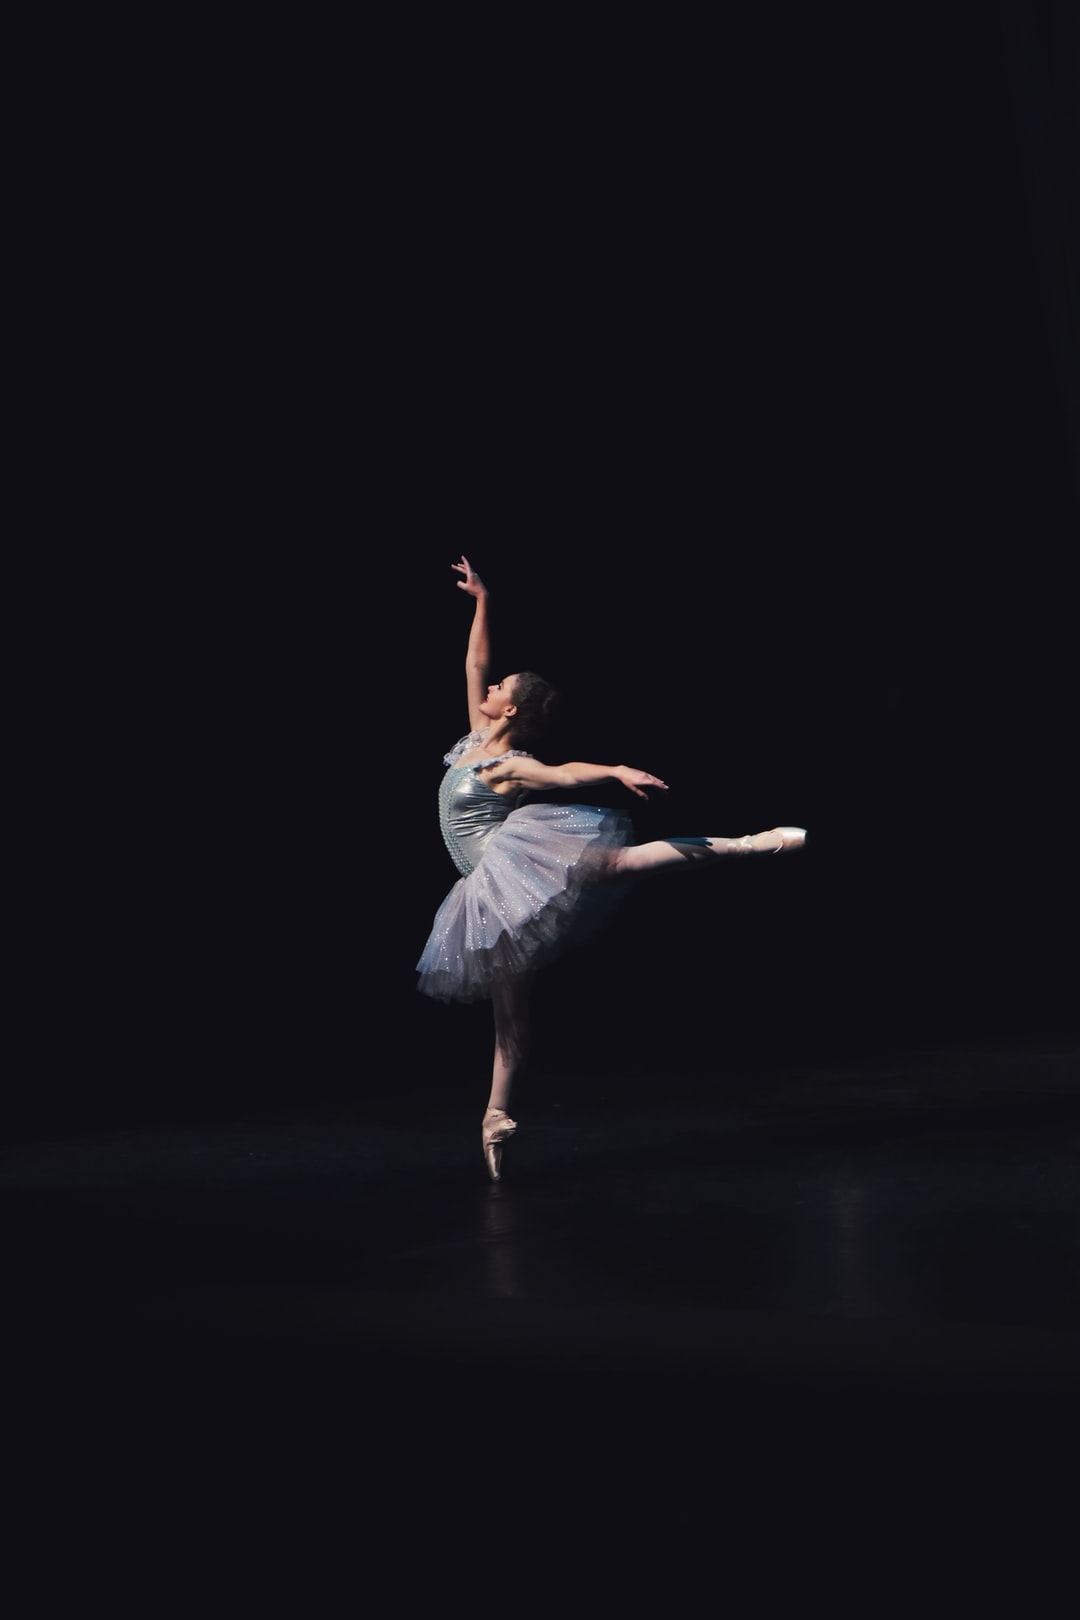 Ballet dancer pictures download free images on unsplash voltagebd